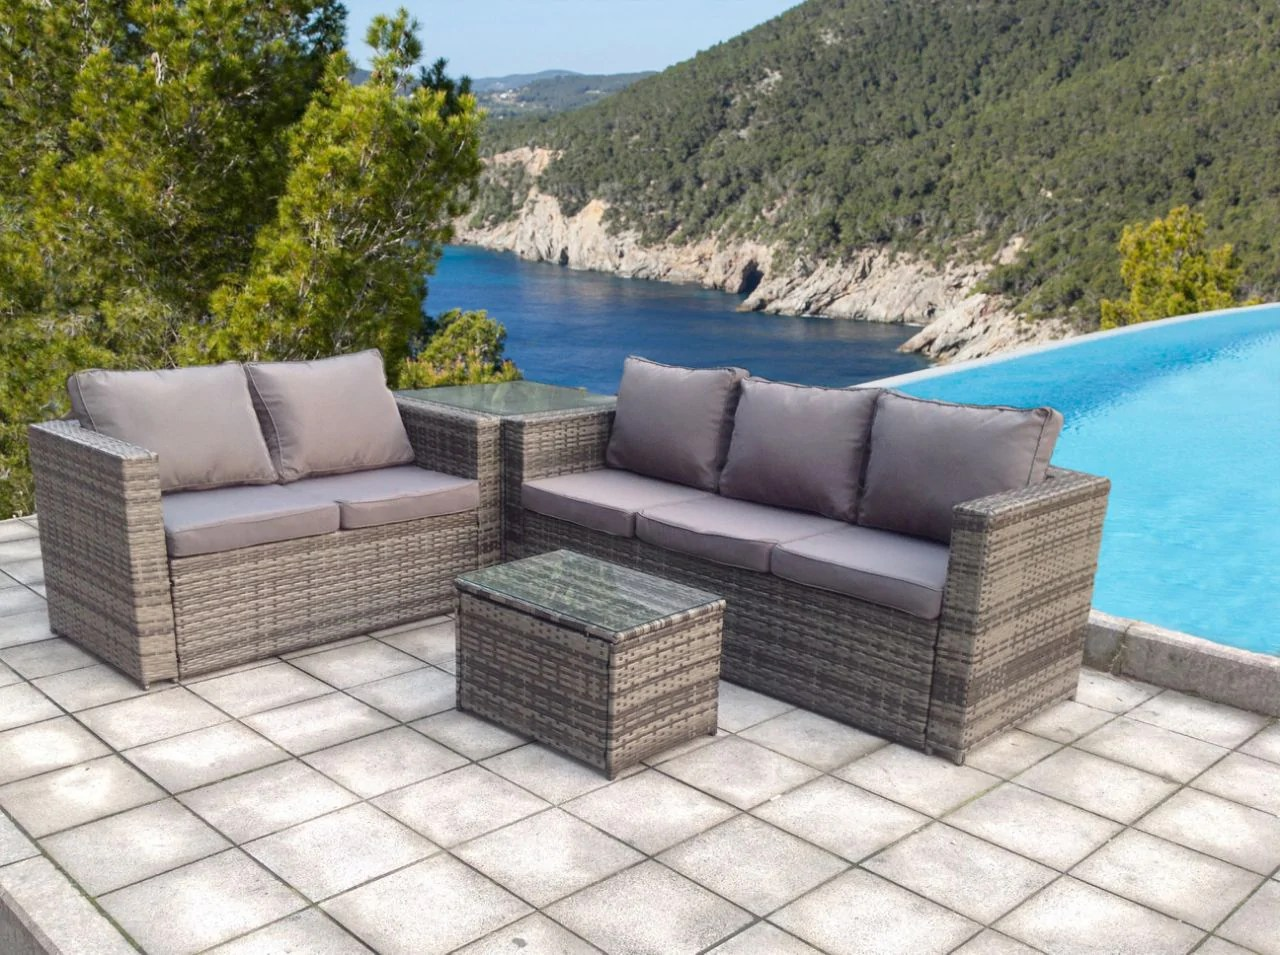 Rattan Sofa Corner Set Rattan Wicker Conservatory Outdoor Garden Furniture Set Corner Set